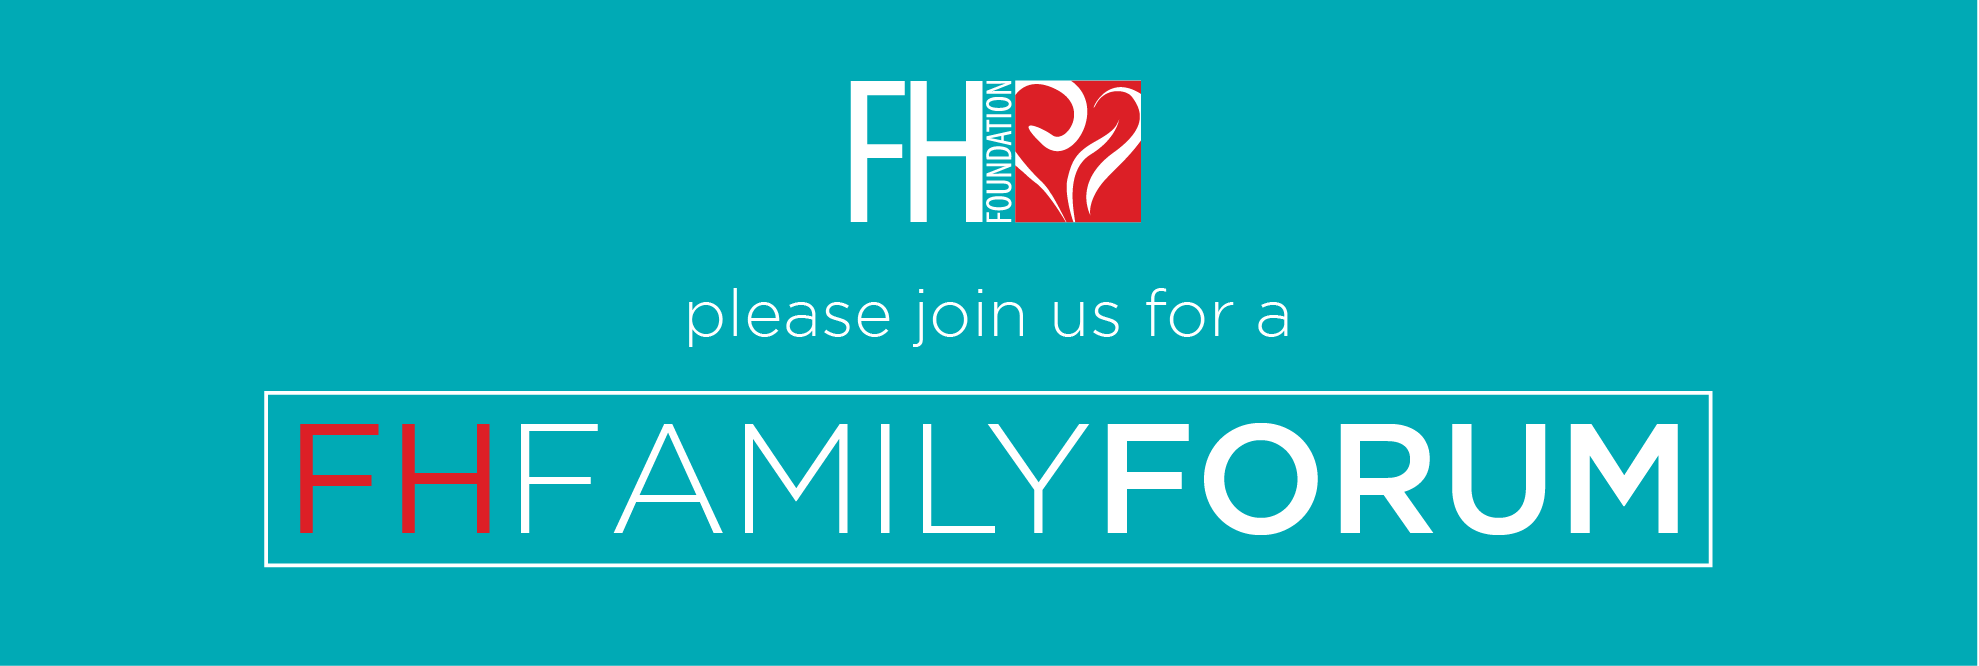 Dallas/Fort Worth FH & Family Community Event